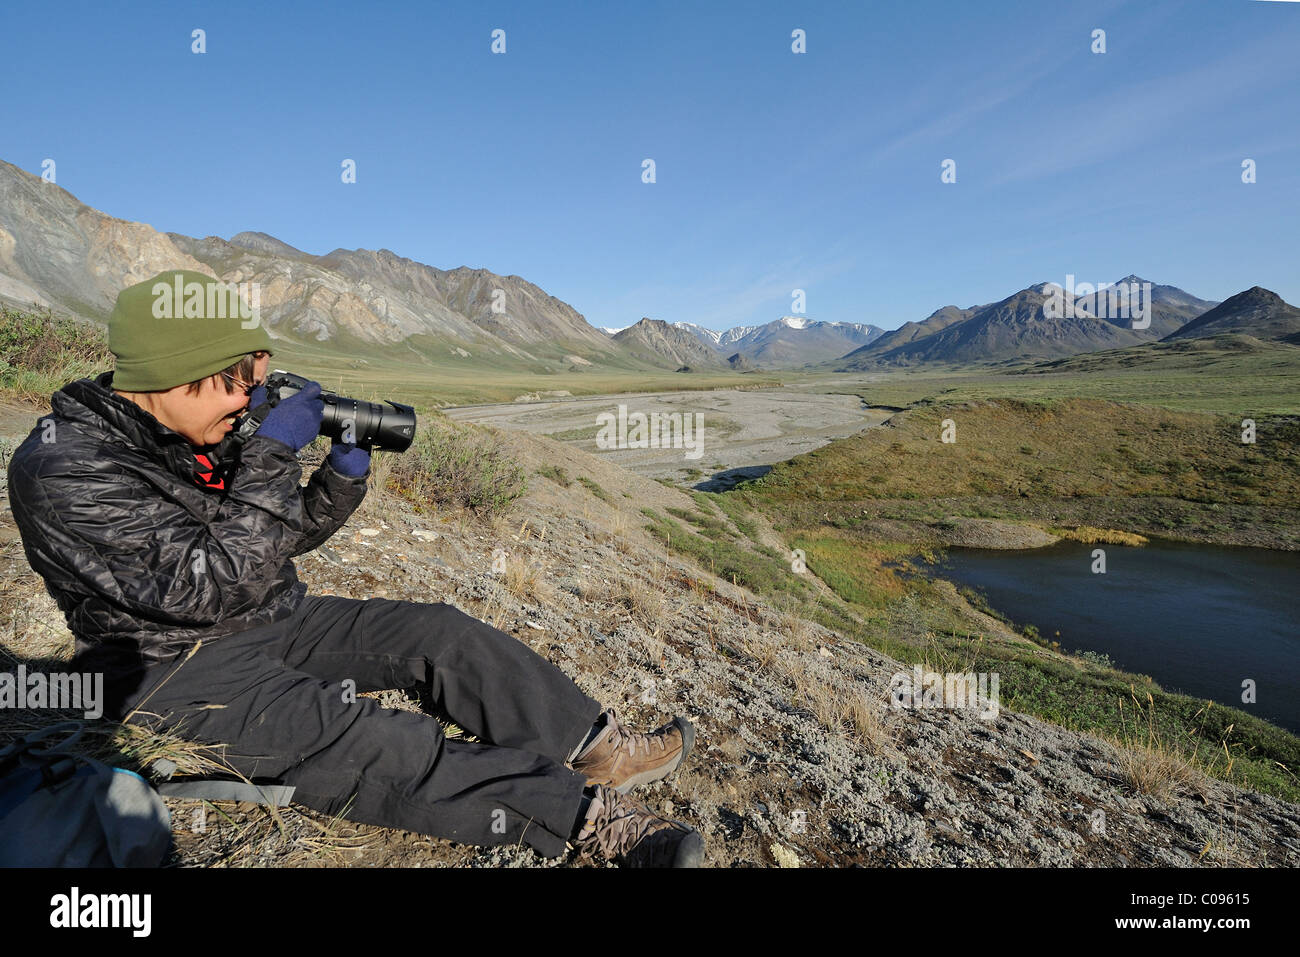 Woman photographs the Hulahula River near its source in the Brooks Range in ANWR, Arctic Alaska, Summer - Stock Image